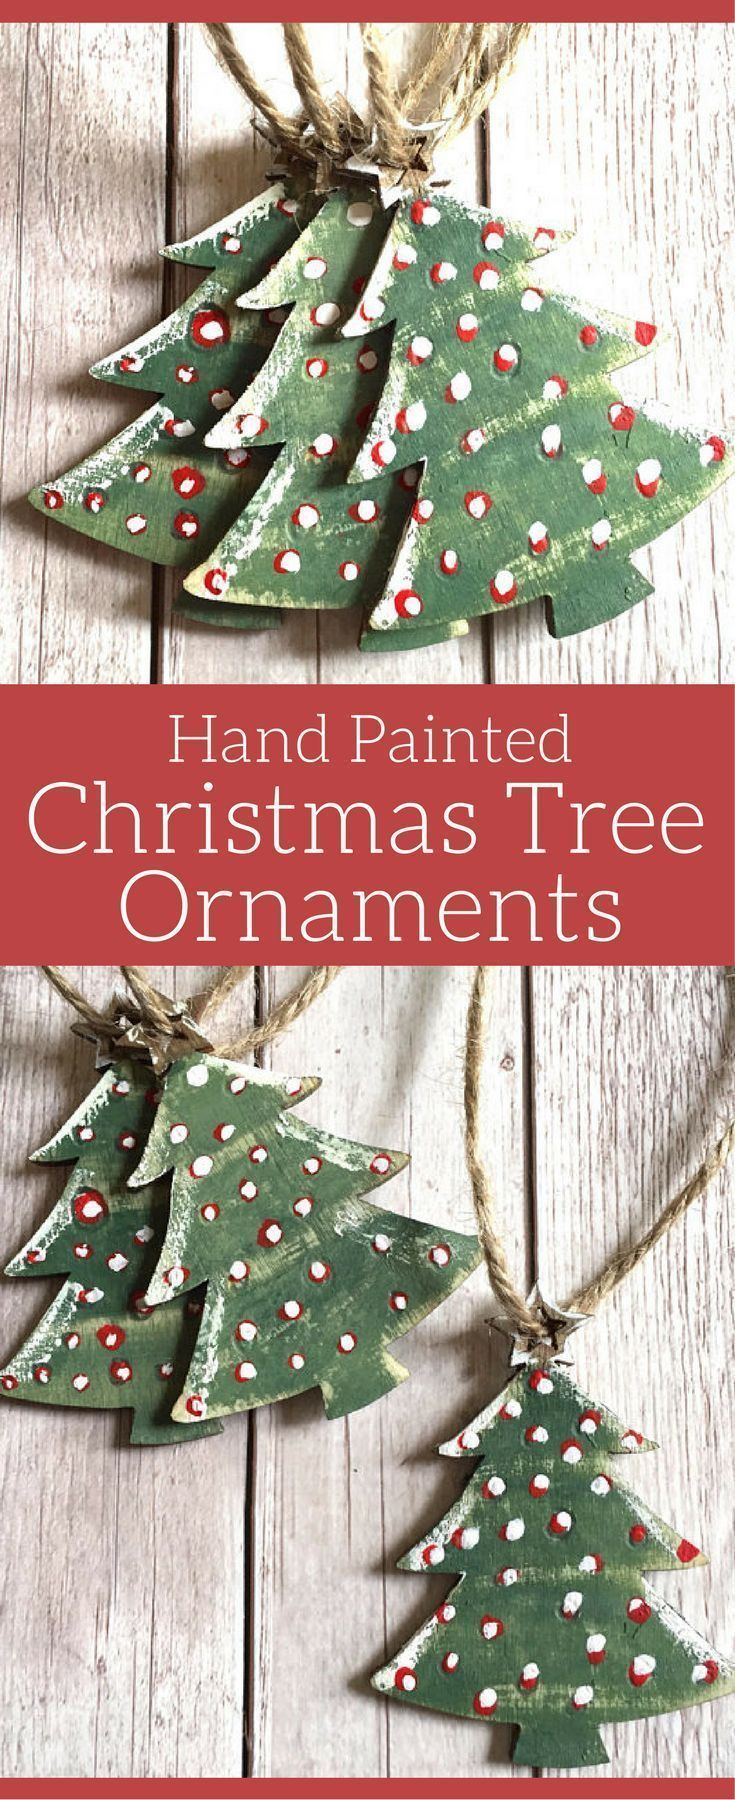 Christmas Tree Ornaments, Christmas Decorations, Set of 3 Hand Painted Wooden Ornaments, Rustic Christmas Decor, Mini Christmas Trees, Red and Green, Christmas Fir Trees, Christmas ornaments #affiliate